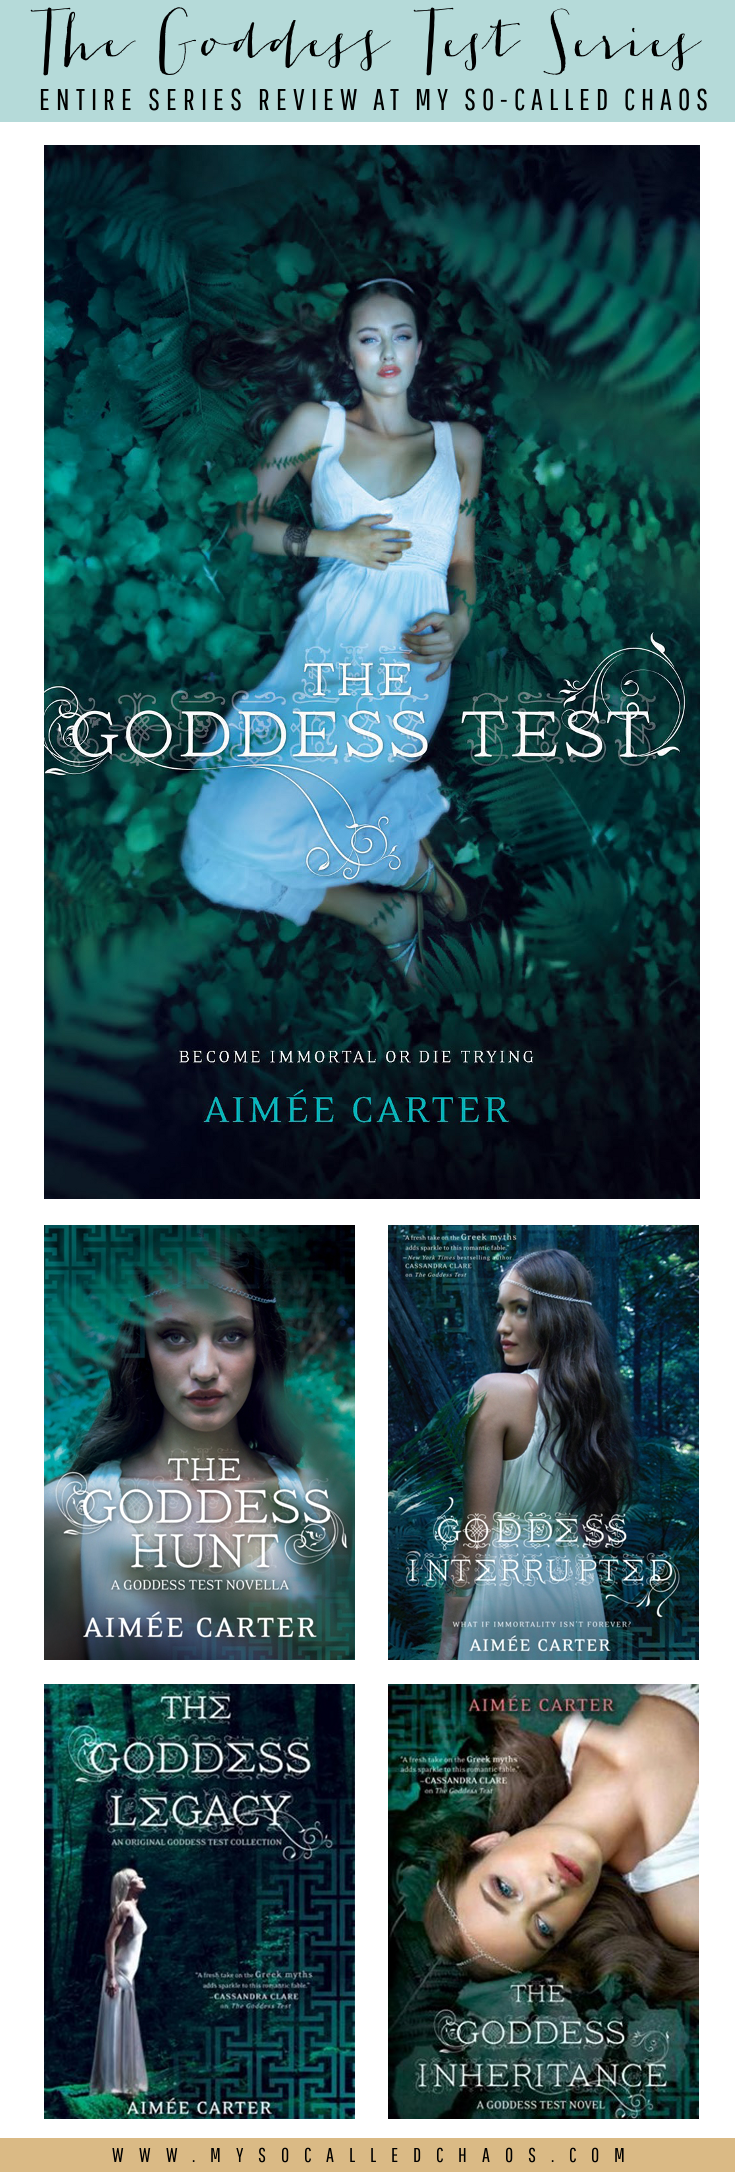 Book Review of the Entire Goddess Test Series by Aimee Carter